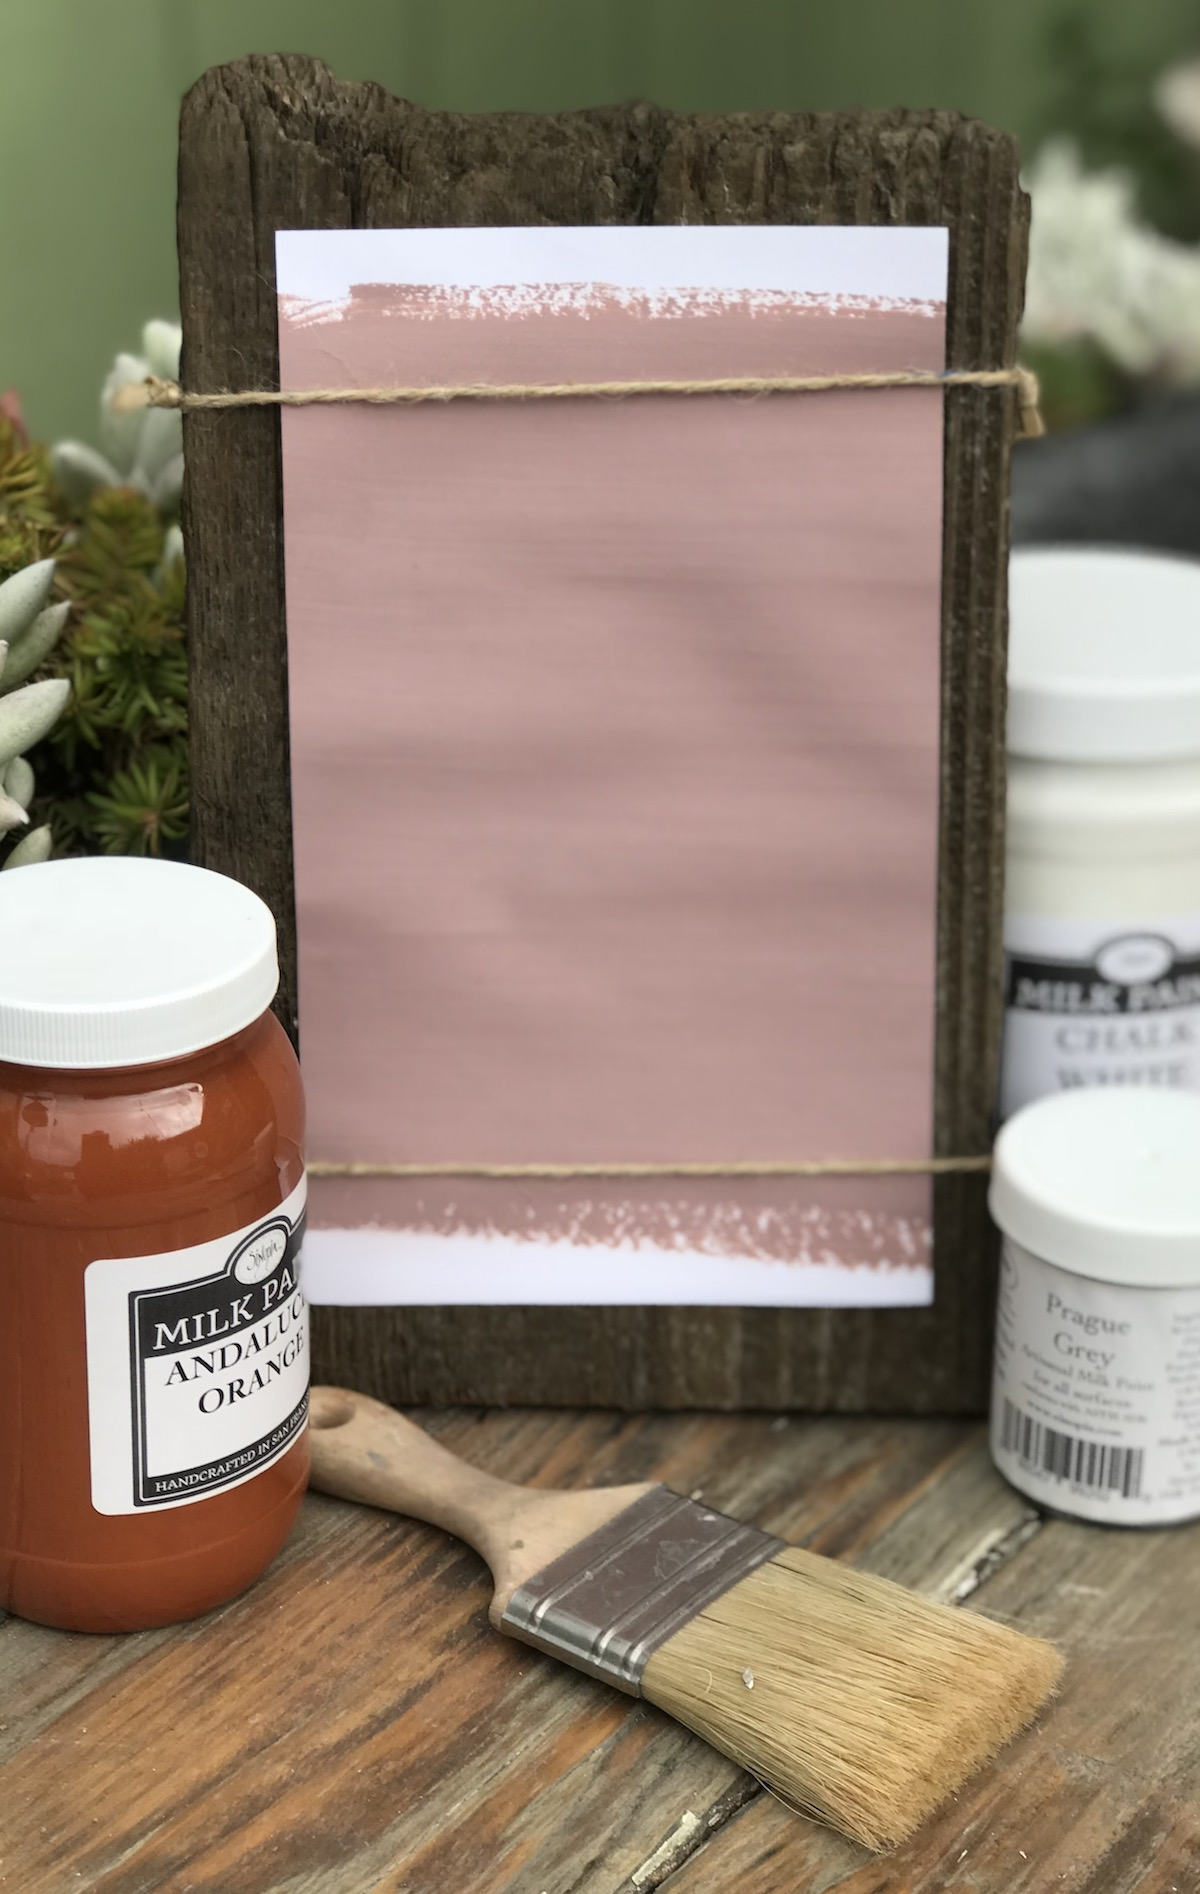 All Natural Artisanal Milk Paint (Casein) Southwest Mauve